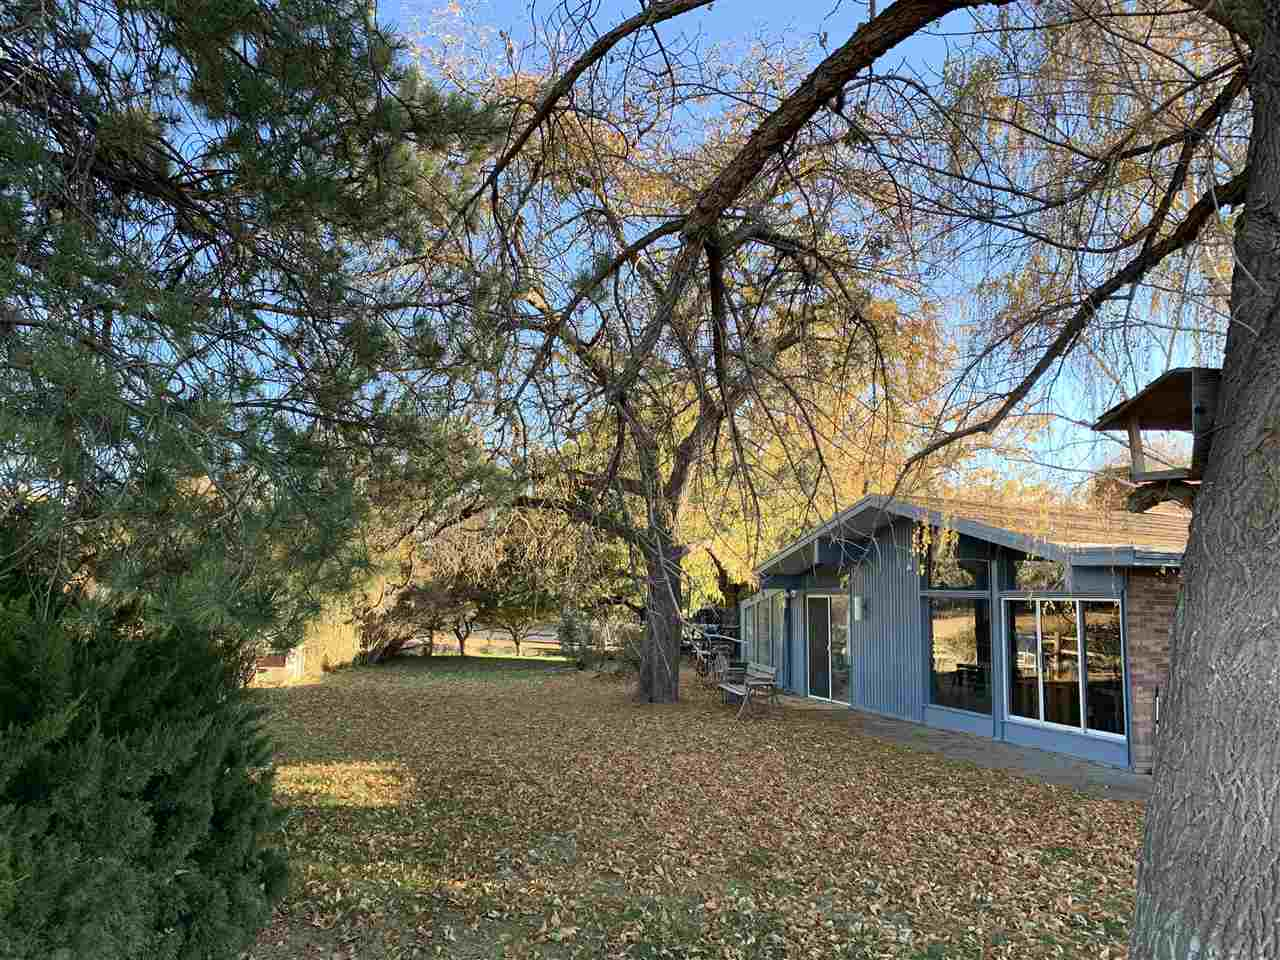 780 26 1/2 Road, Grand Junction, CO 81506